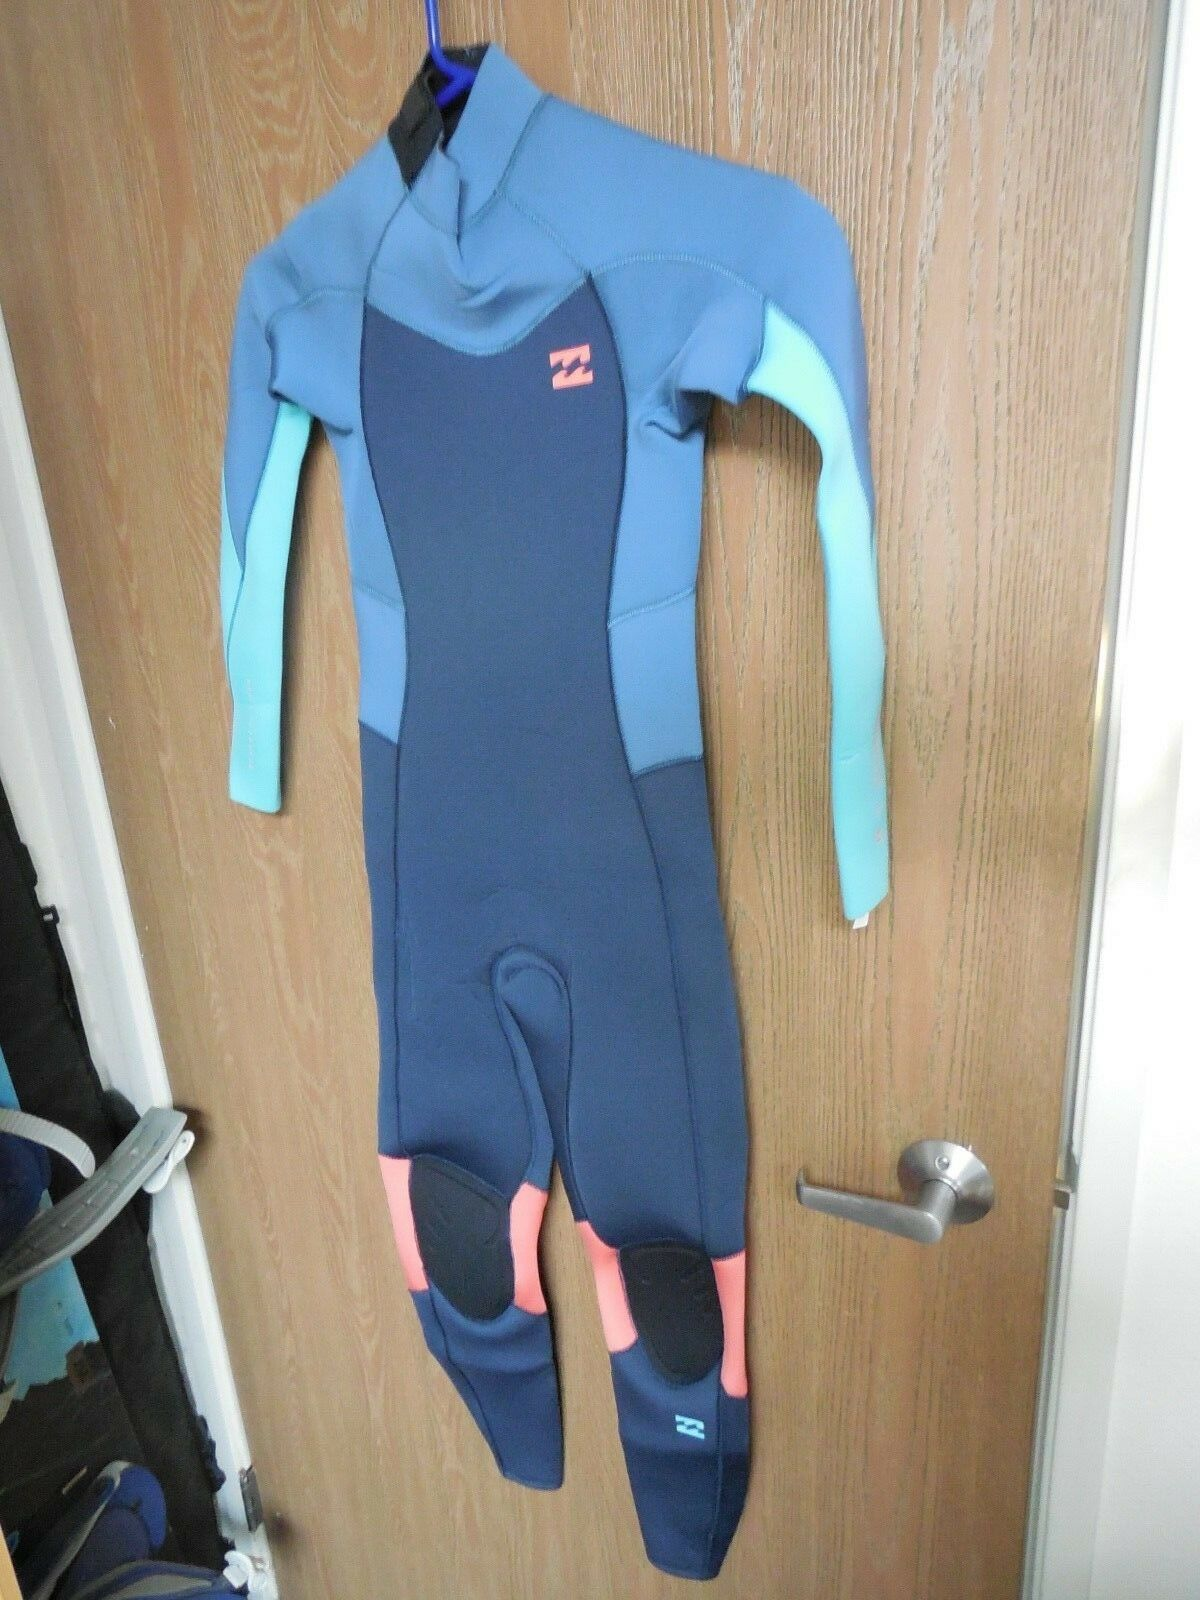 NEW With Tags BILLABONG Furnace Synergy 3 2 Wetsuit   Teens Sz-12    Girls